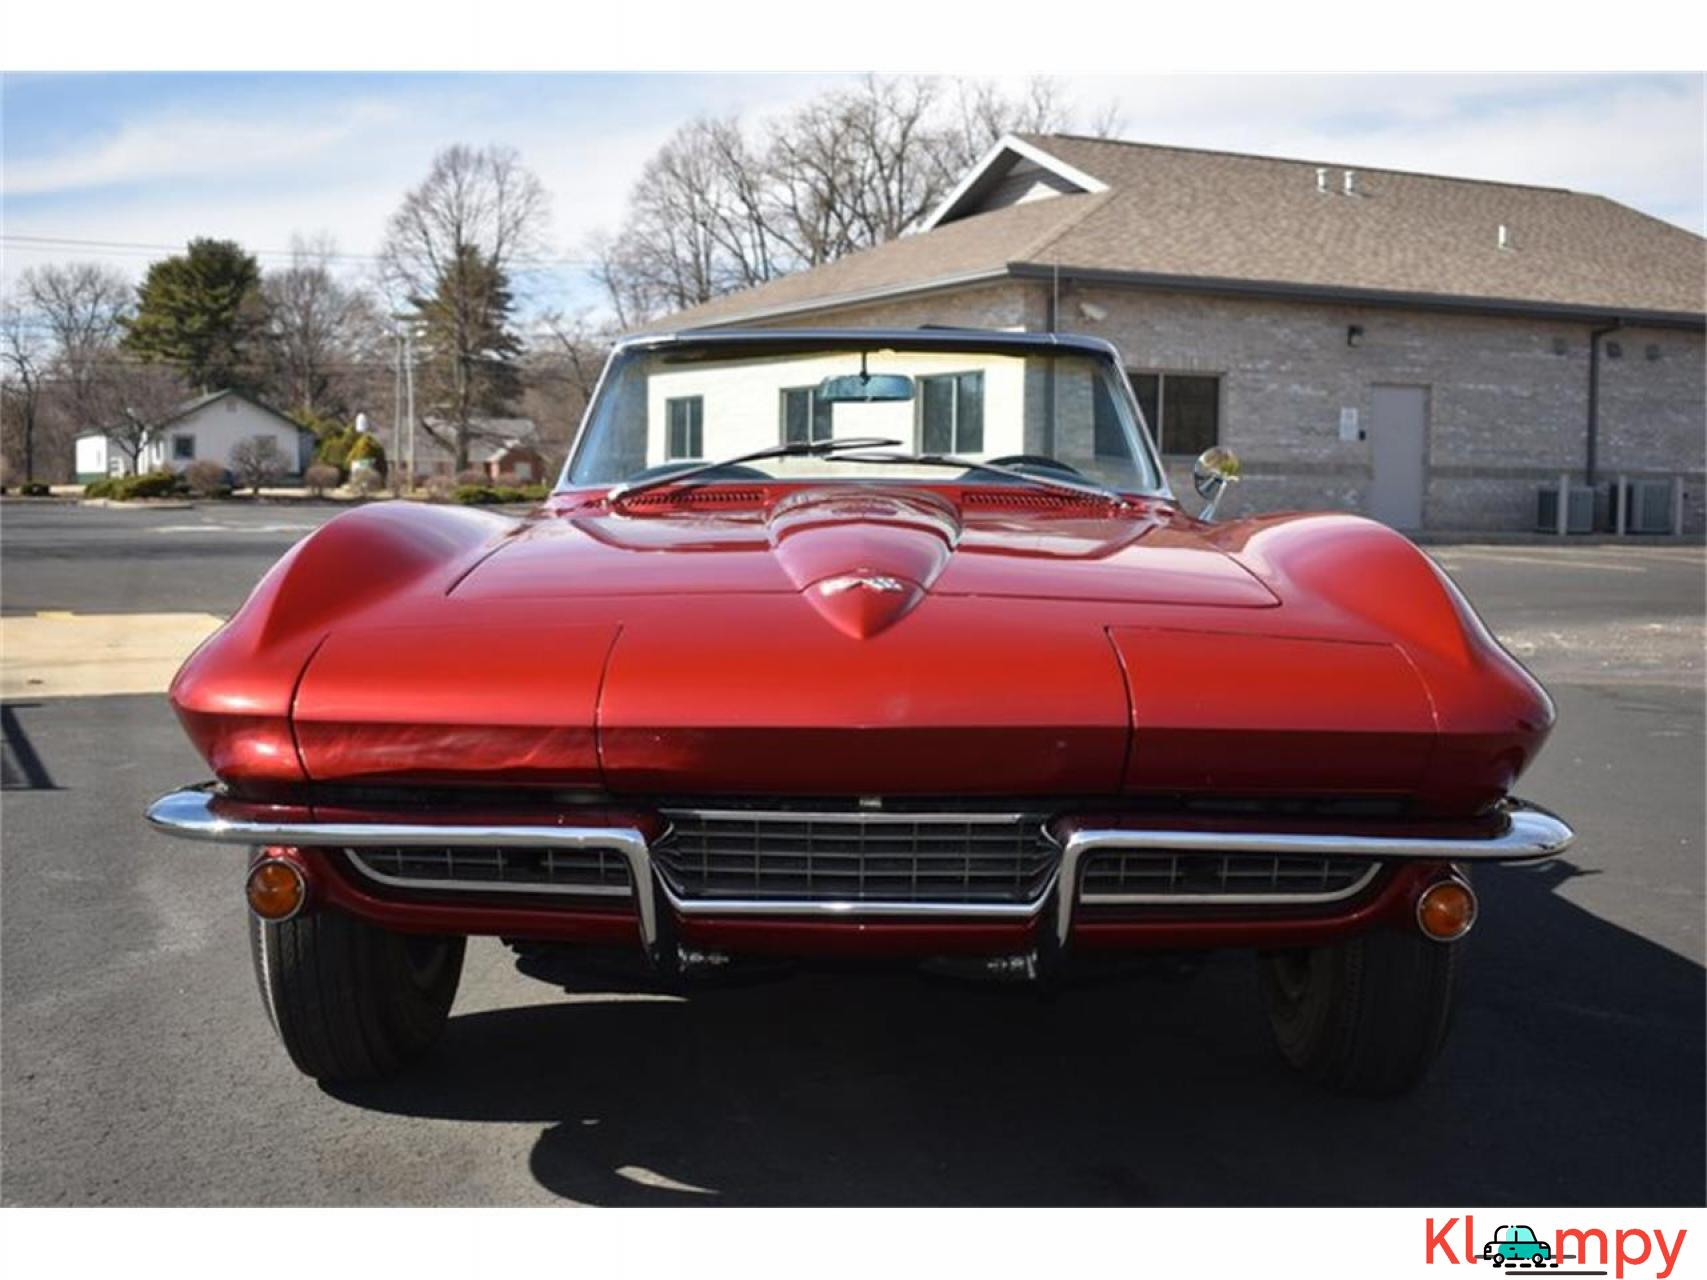 1967 Chevrolet Corvette 350HP 327 Cu In V8 - 11/20